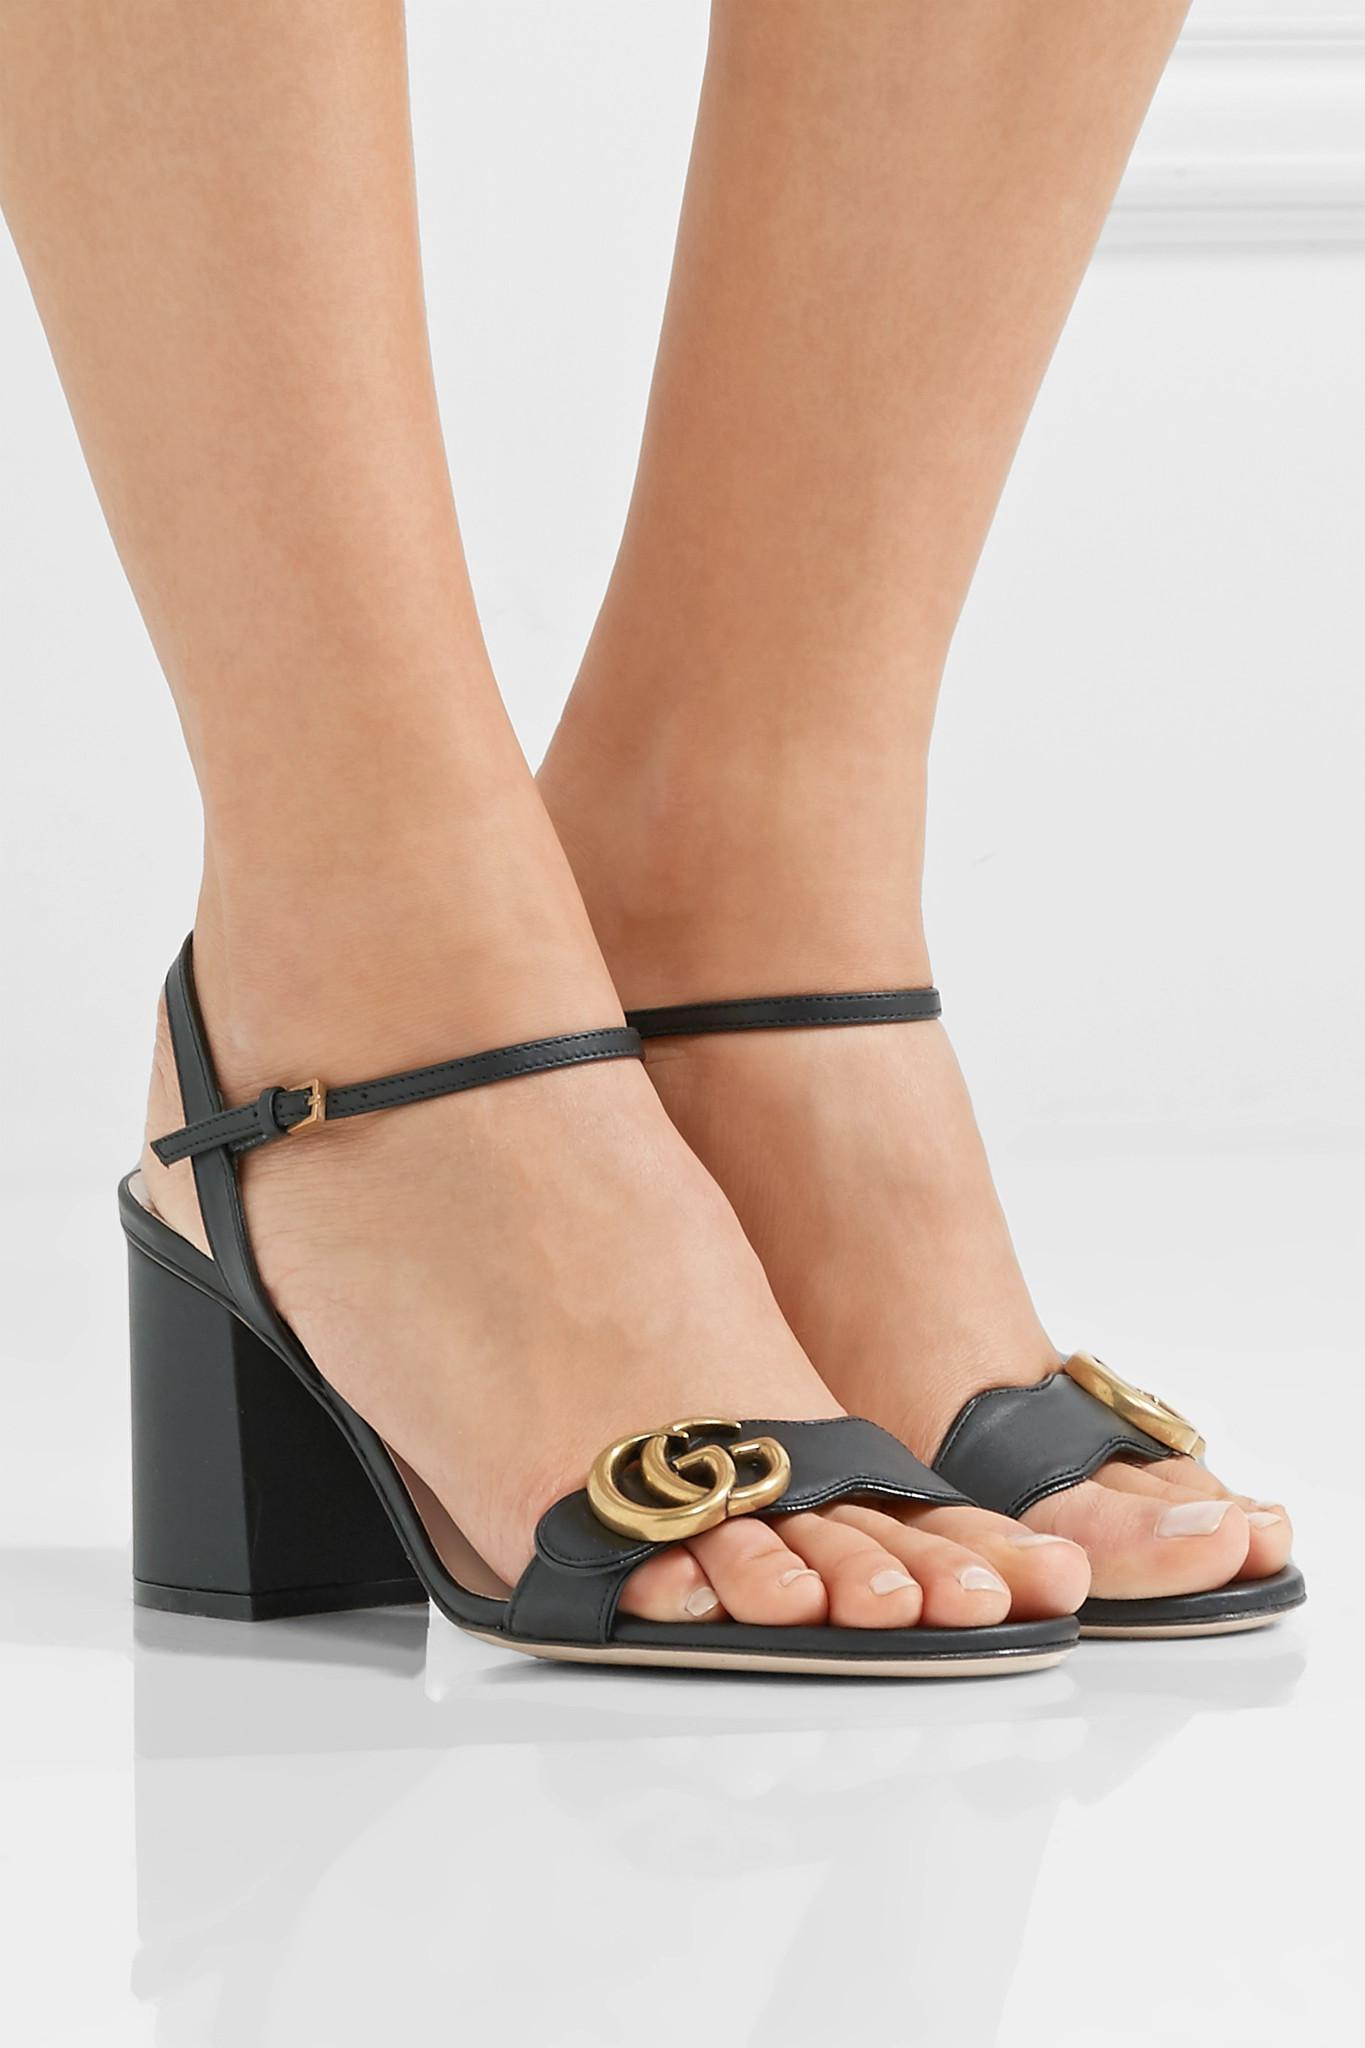 c5eb31e5146d Gucci - Black Marmont Embellished Leather Sandals - Lyst. View fullscreen